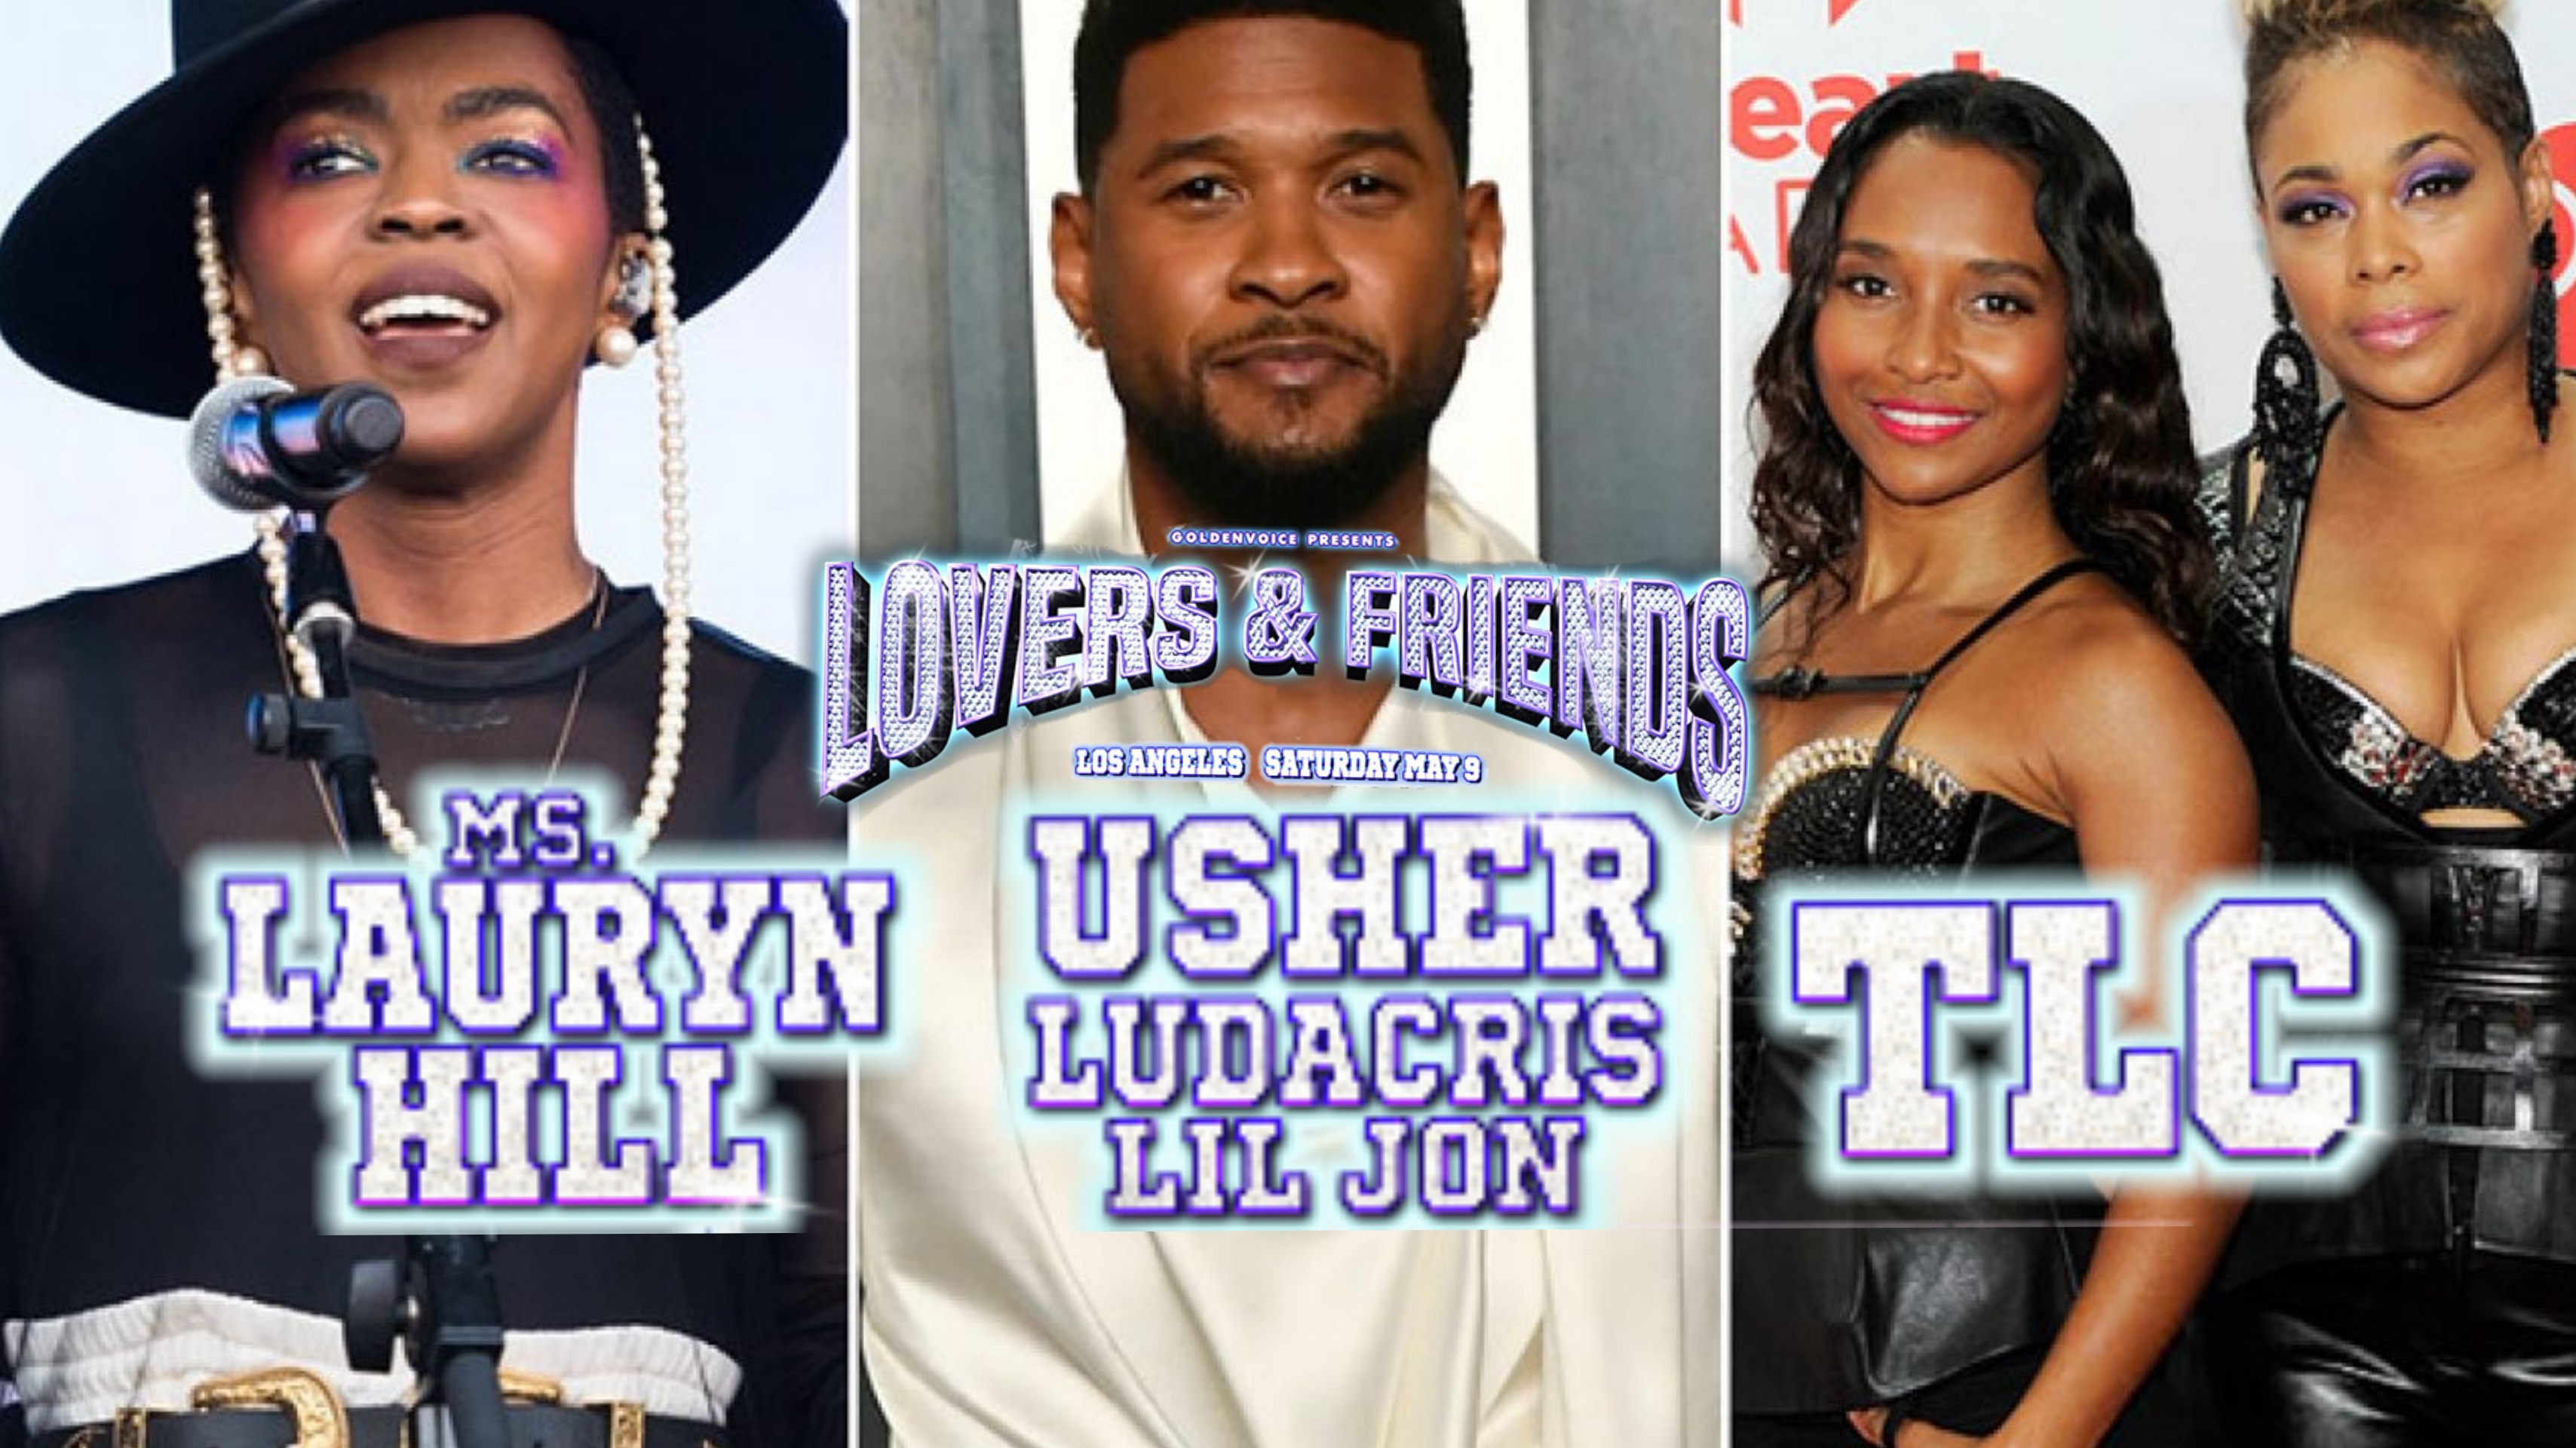 TLC to Headline Snoop Dogg's 'Lovers & Friends Festival' with Usher & Lauryn Hill